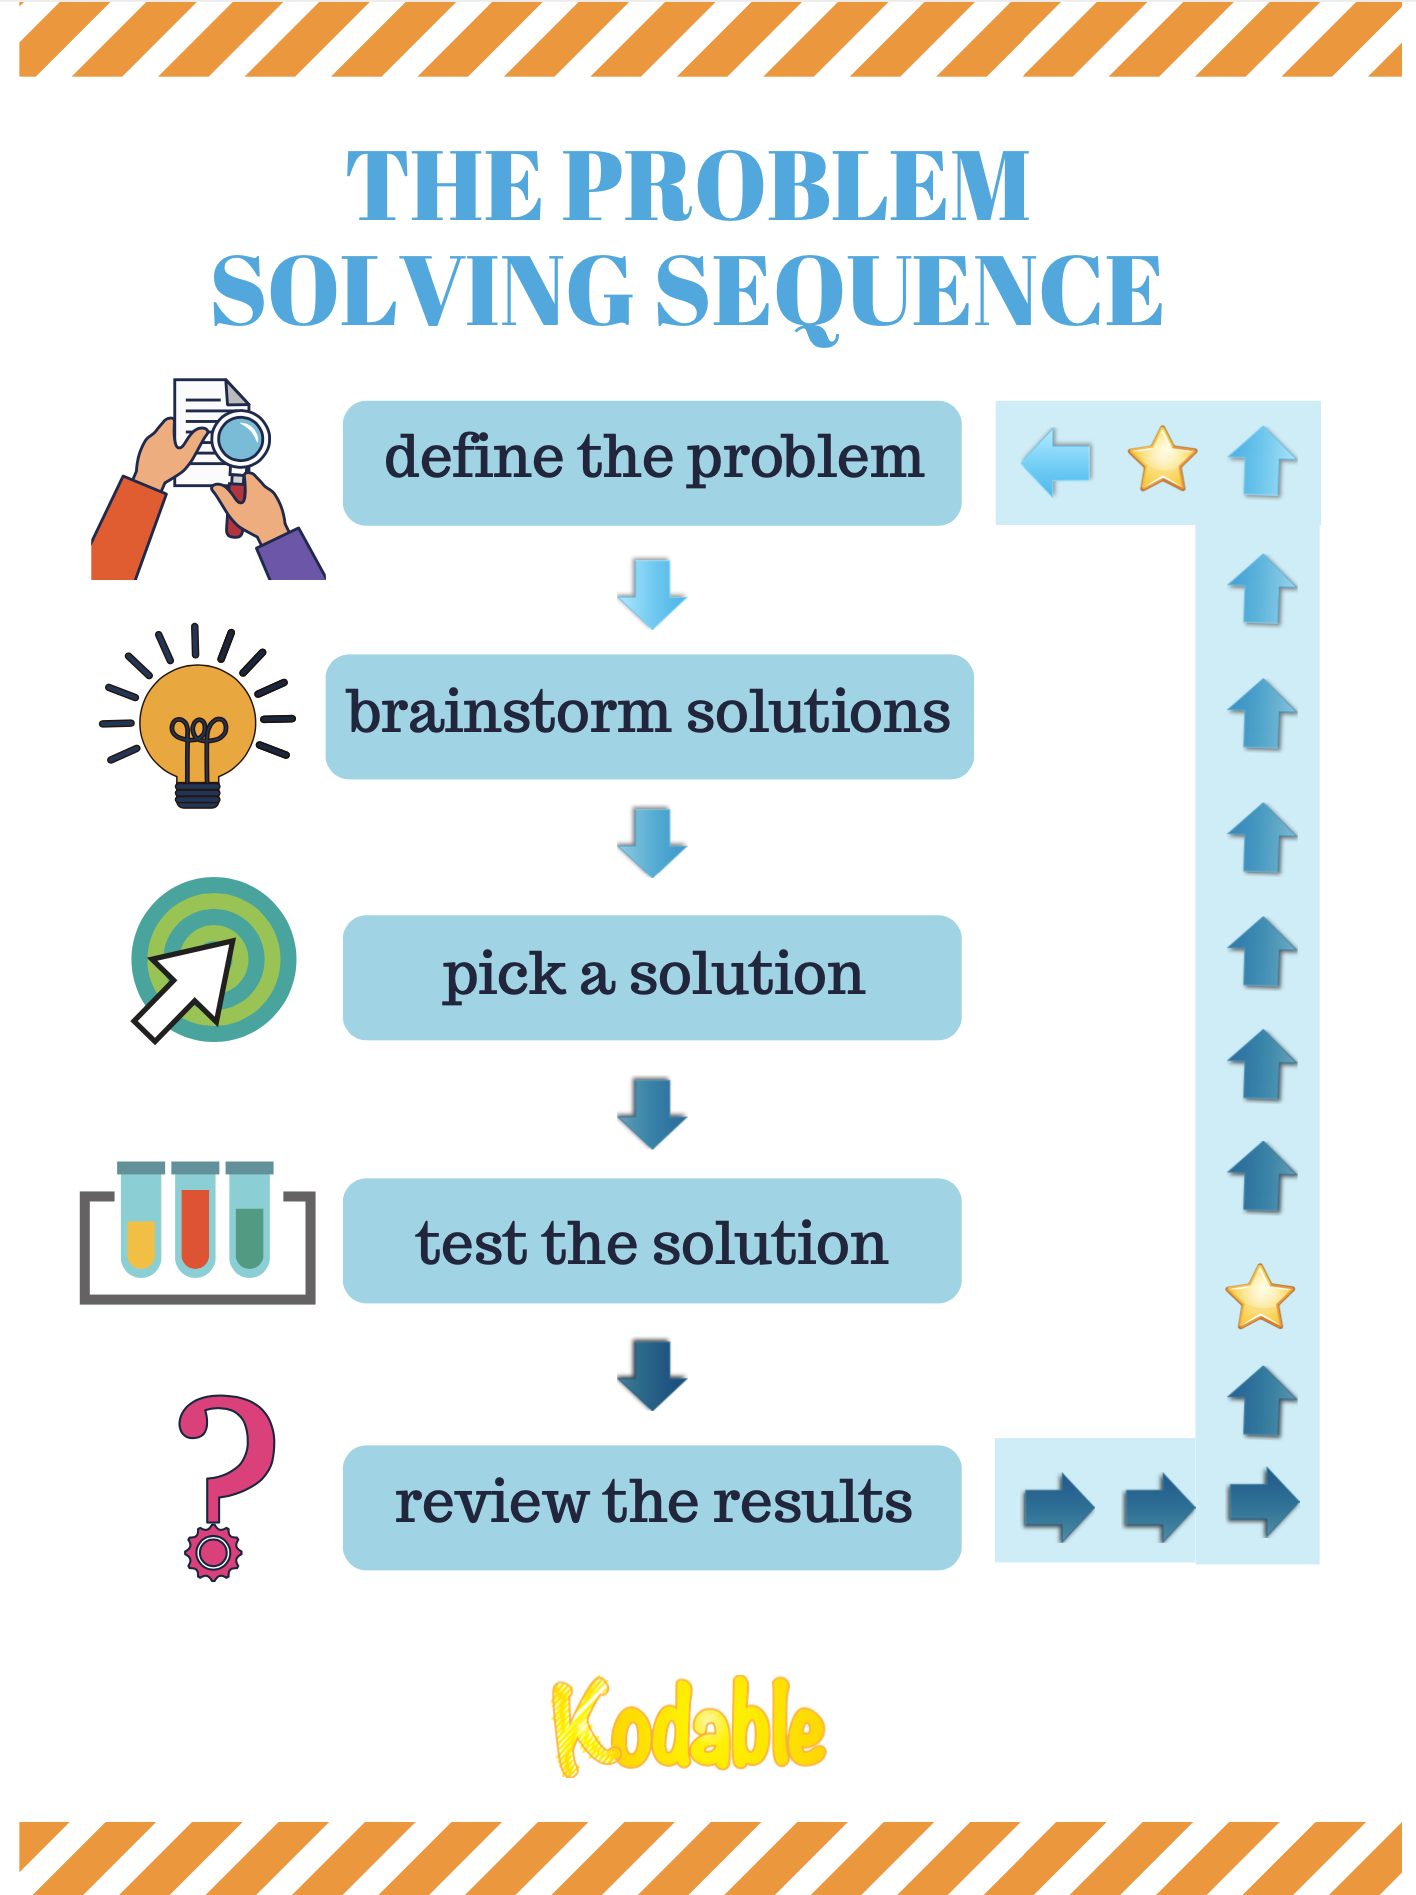 Problem-solving skills for kids made easy using the problem solving sequence.